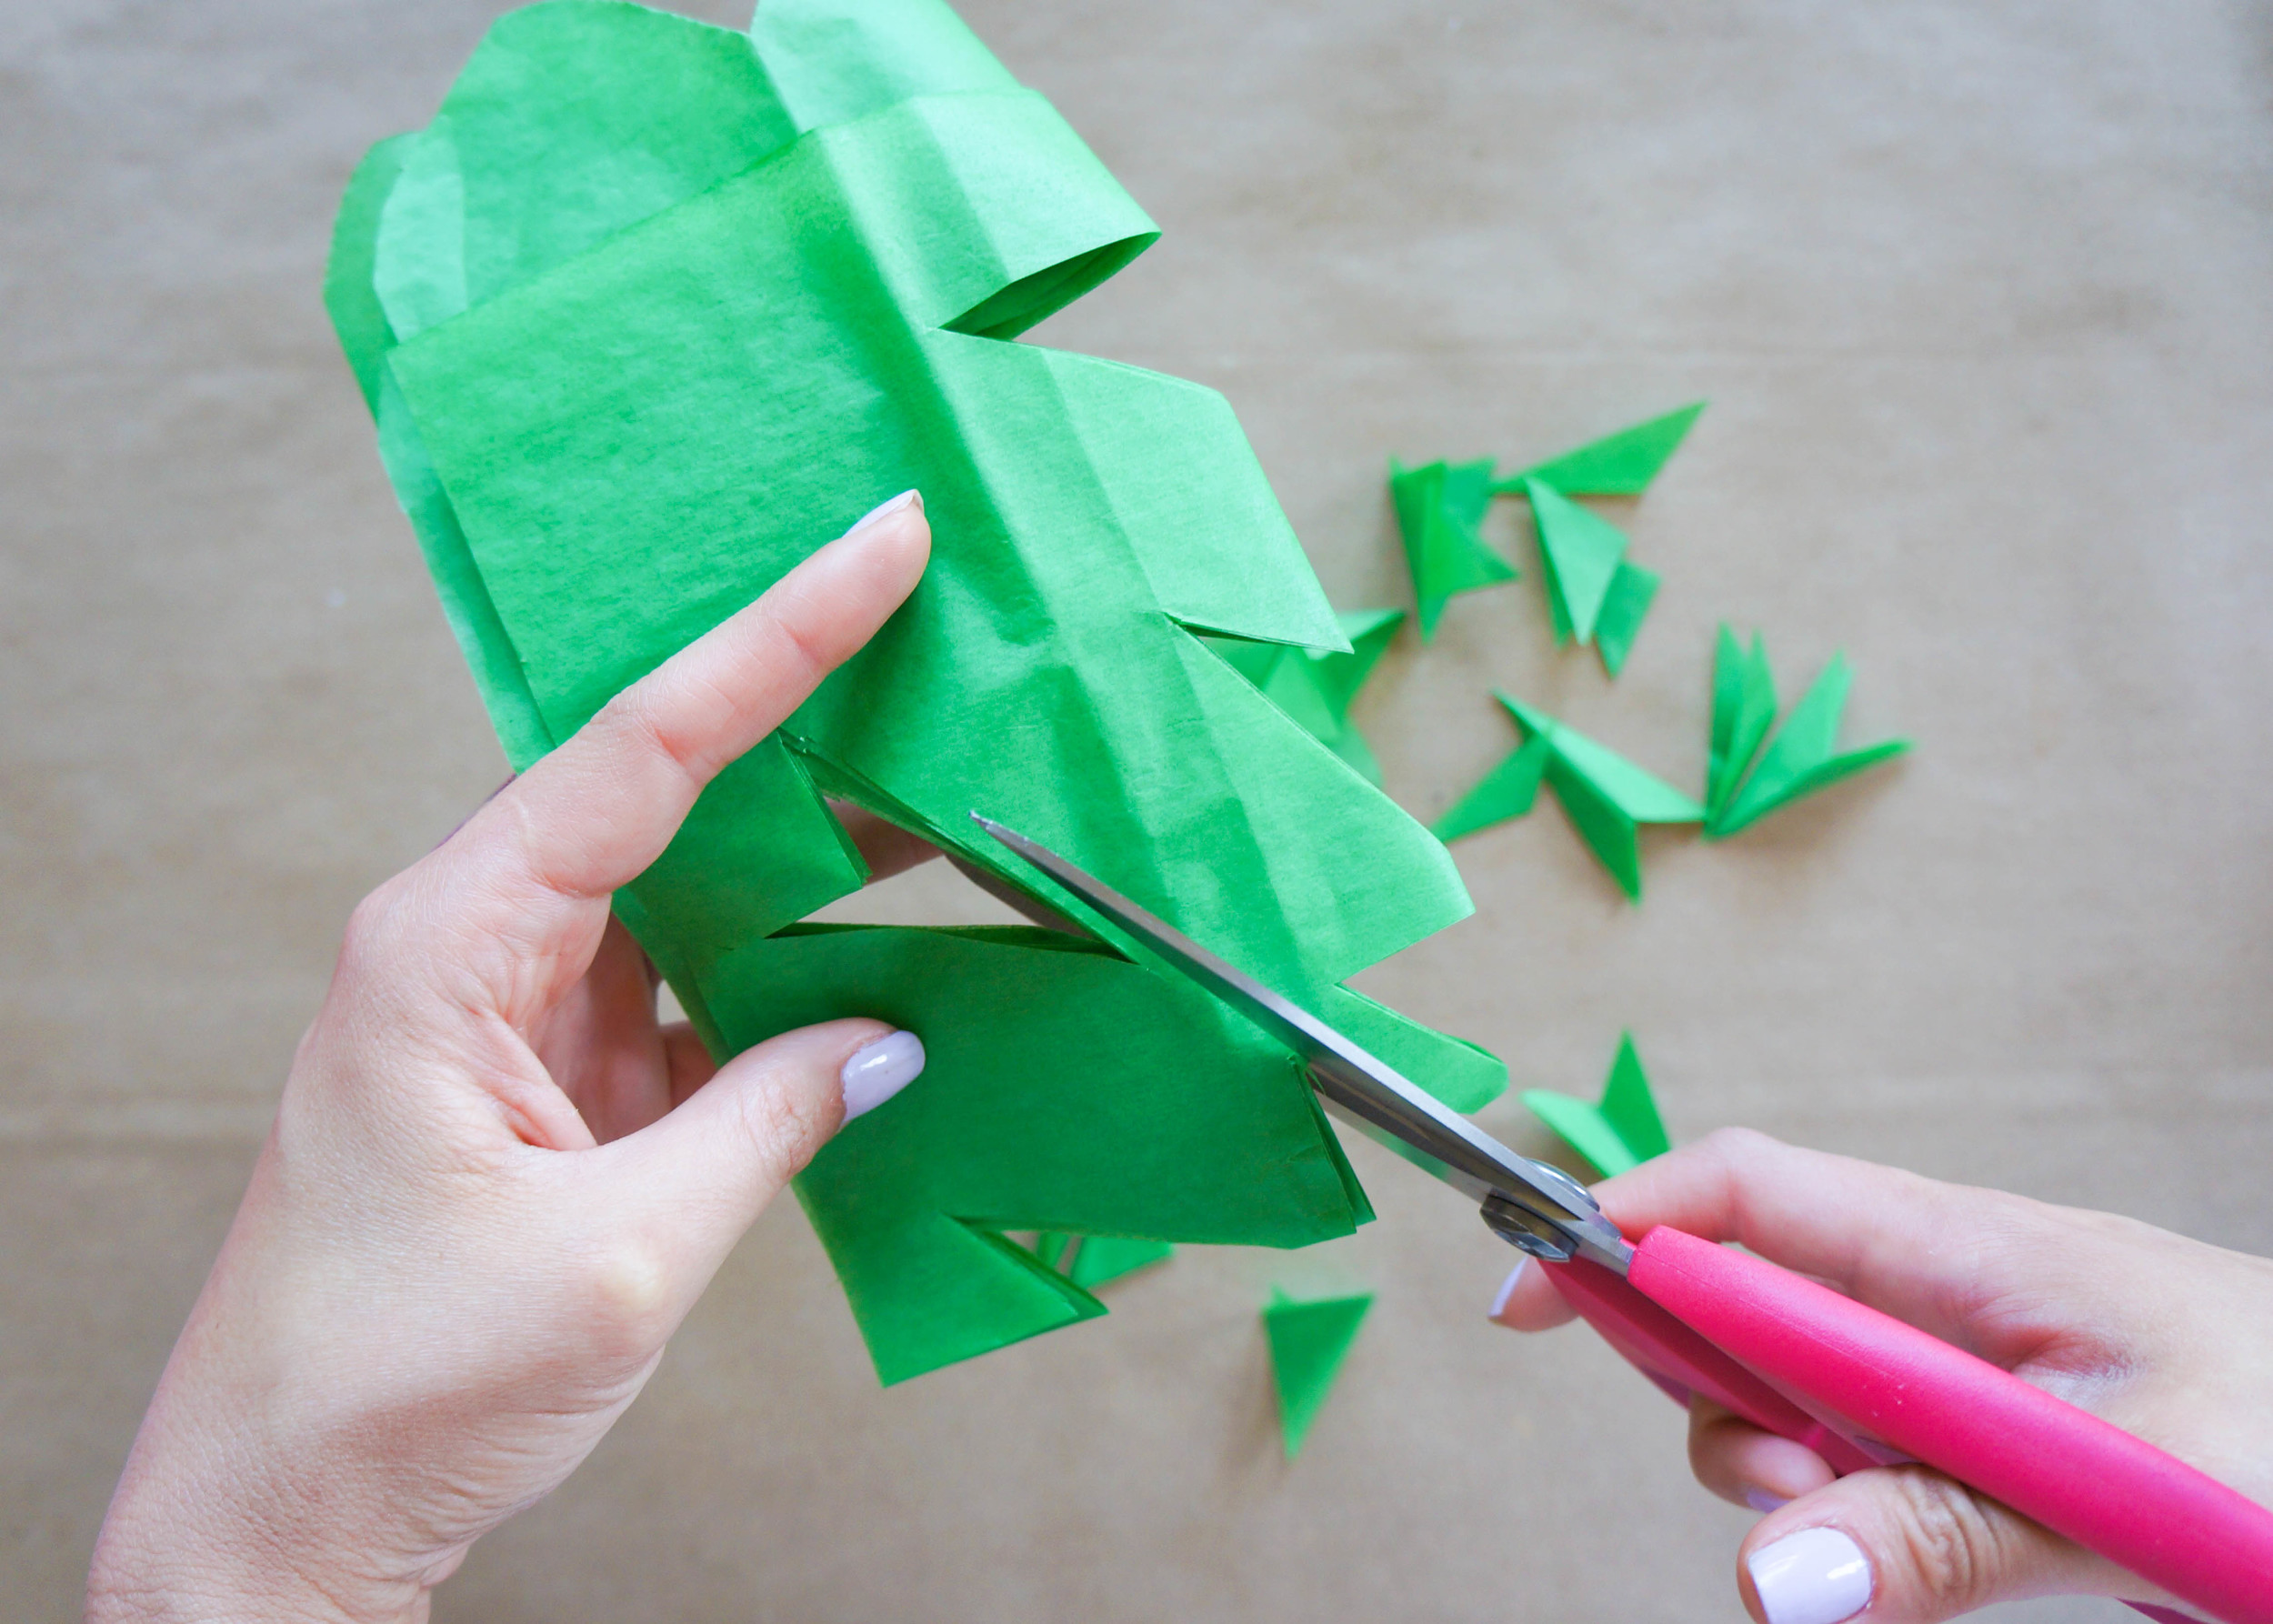 Now here is where the magic happens! Think back to grade school, during the winter months, when you had to turn an ordinary piece of paper into a beautiful snowflake! At this point, anything goes, as long as you don't cut chunks out of your cute scalloped edge.